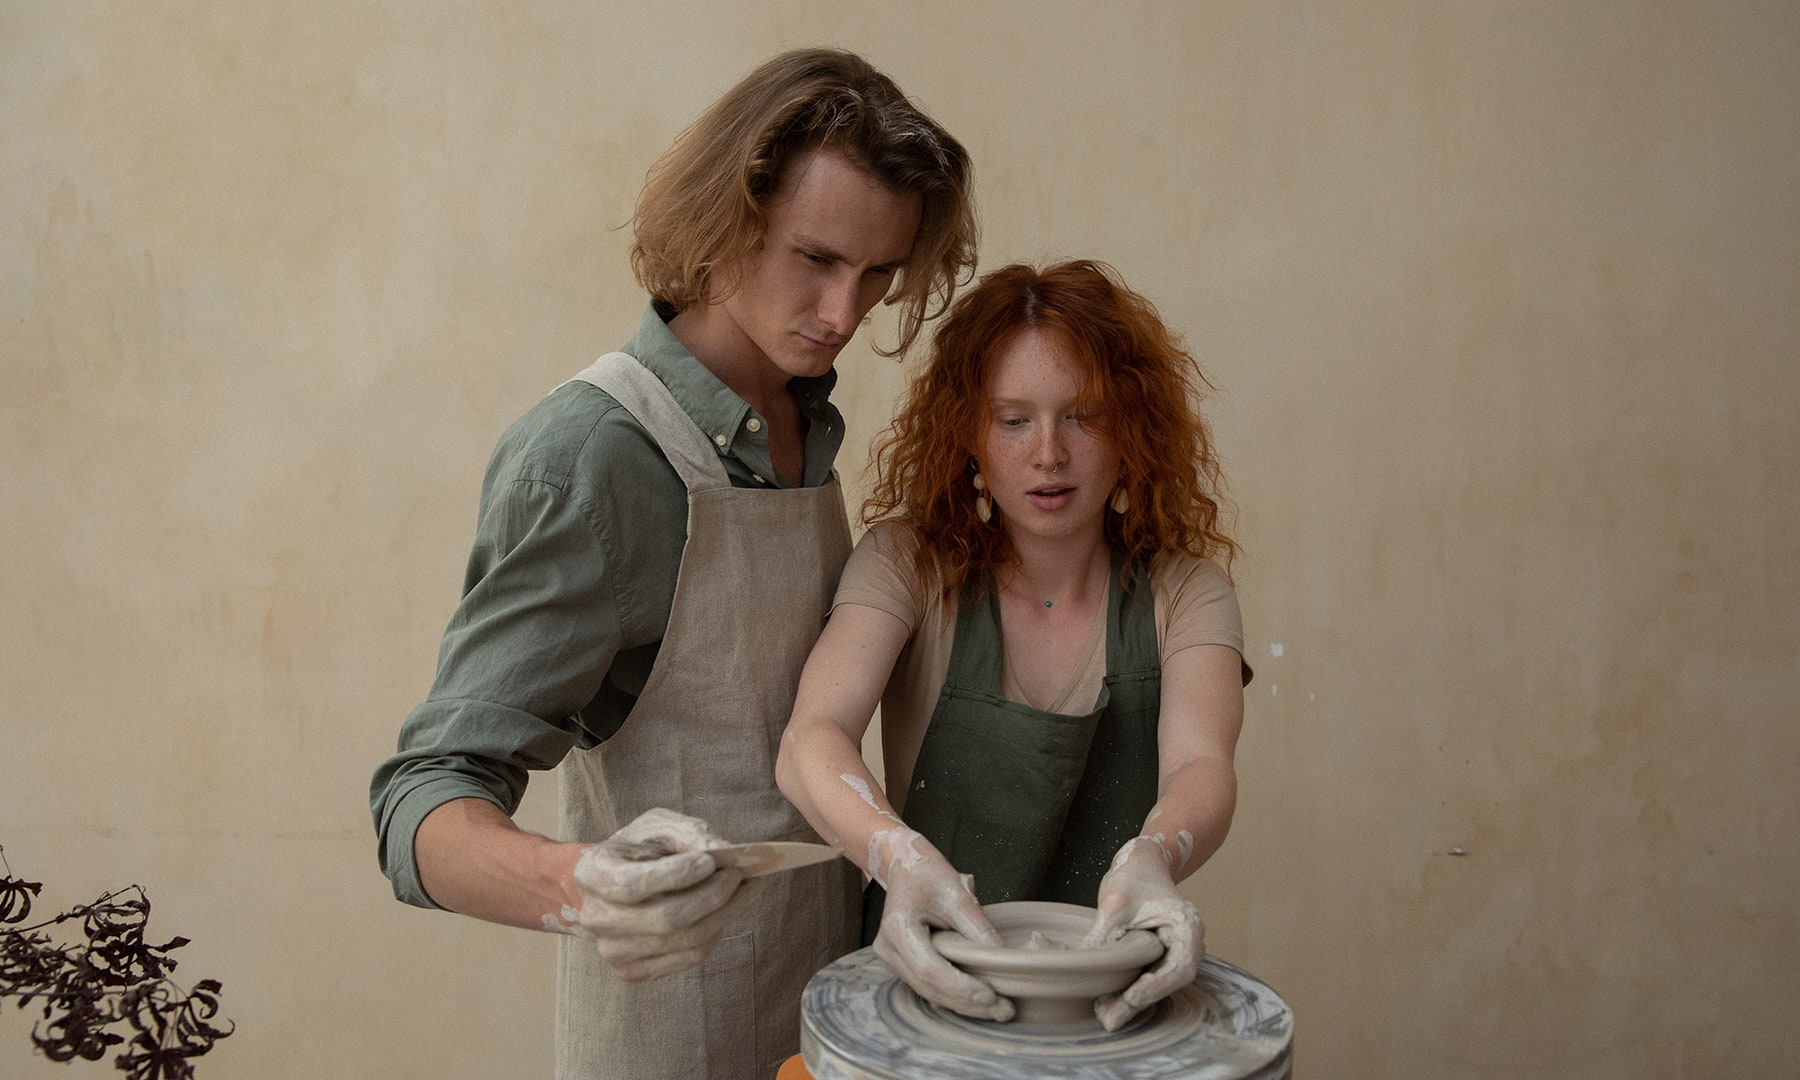 bloomthis-valentines-date-ideas-couple-doing-pottery